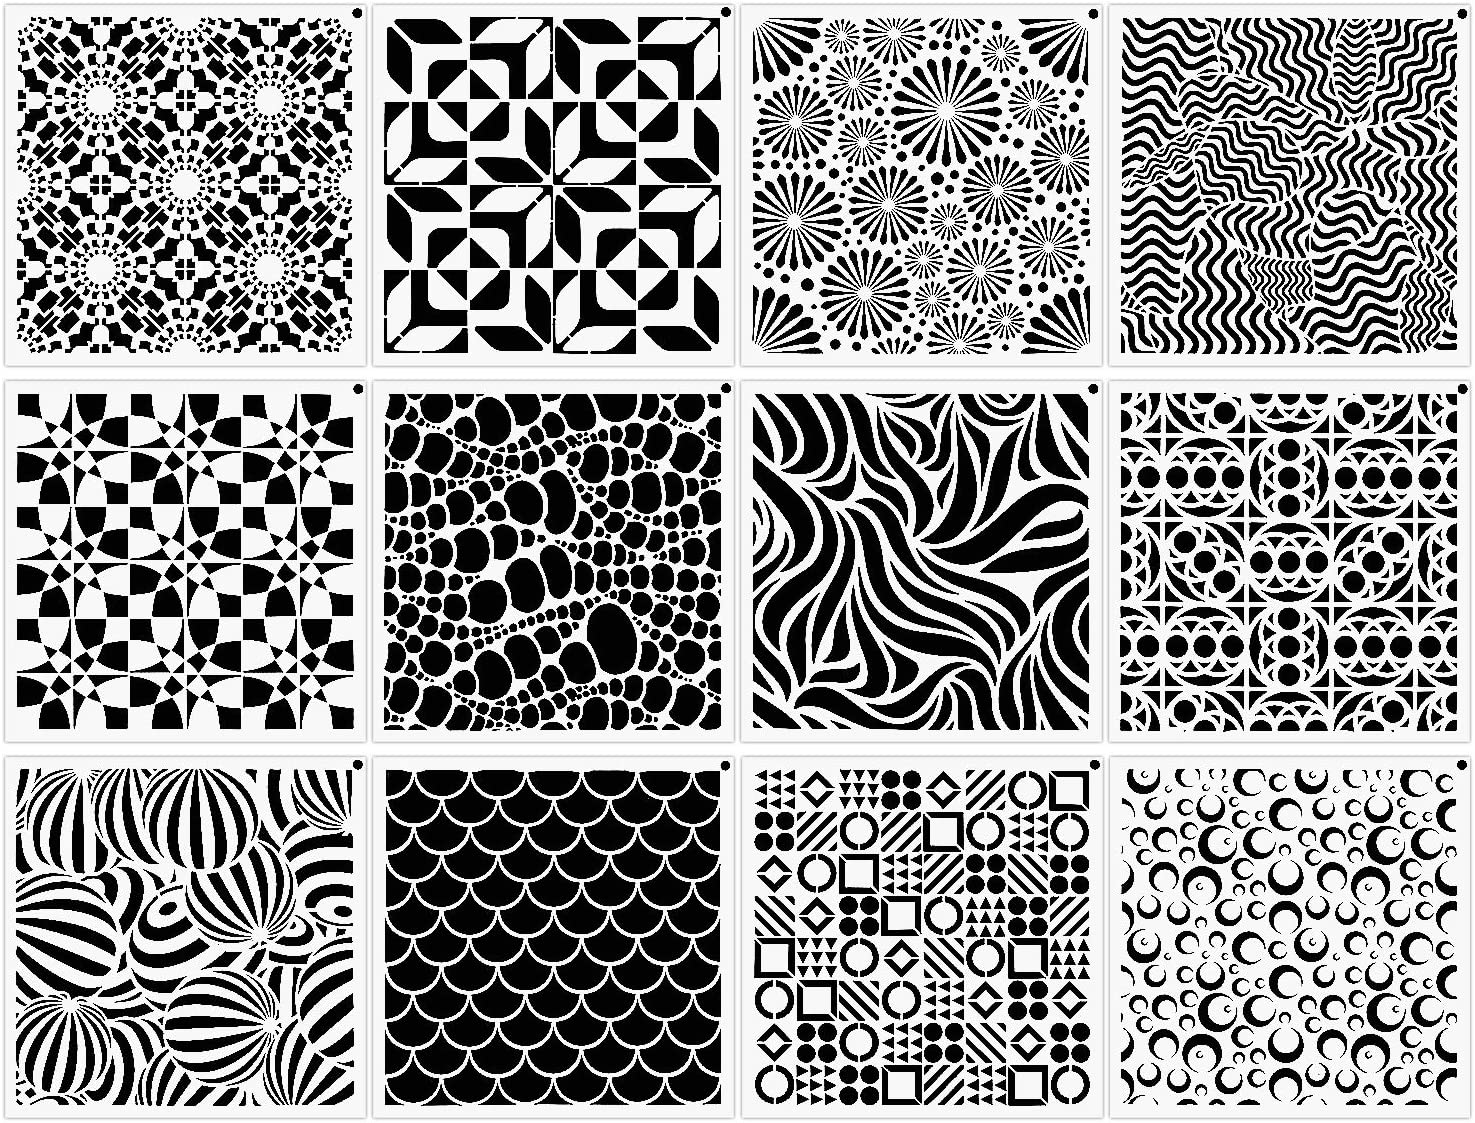 12-Pack (12x12Inch) Geometric Stencils Painting Templates for Wall Tile Floor Furniture Wood Scrapbooking Craft Drawing Tracing DIY Art Supplies